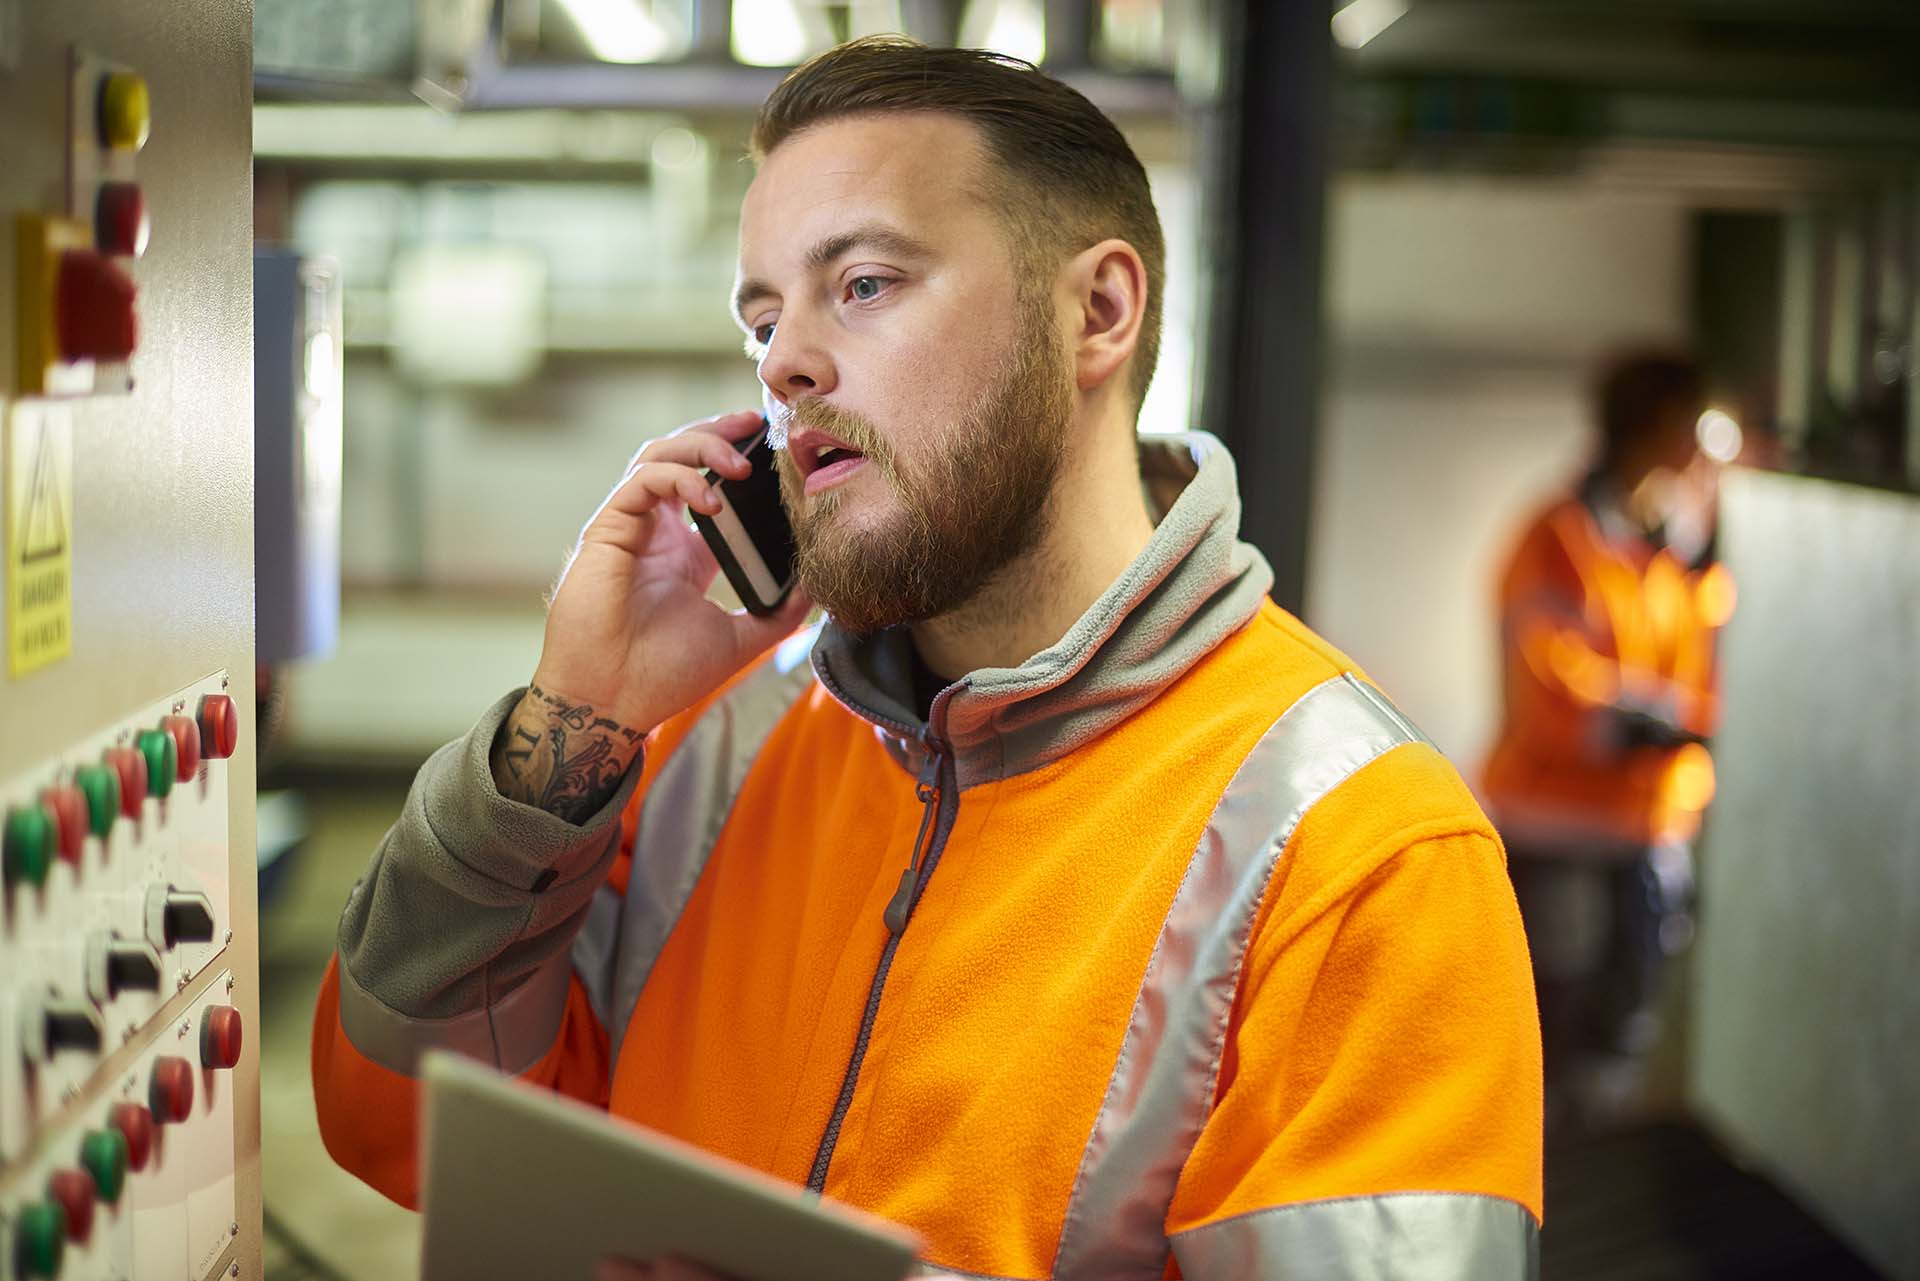 An industrial service engineer conducts a safety check of a control panel in a boiler room. He is wearing hi vis and is on the phone to technical support double checking his decision on how to fix a technical problem.